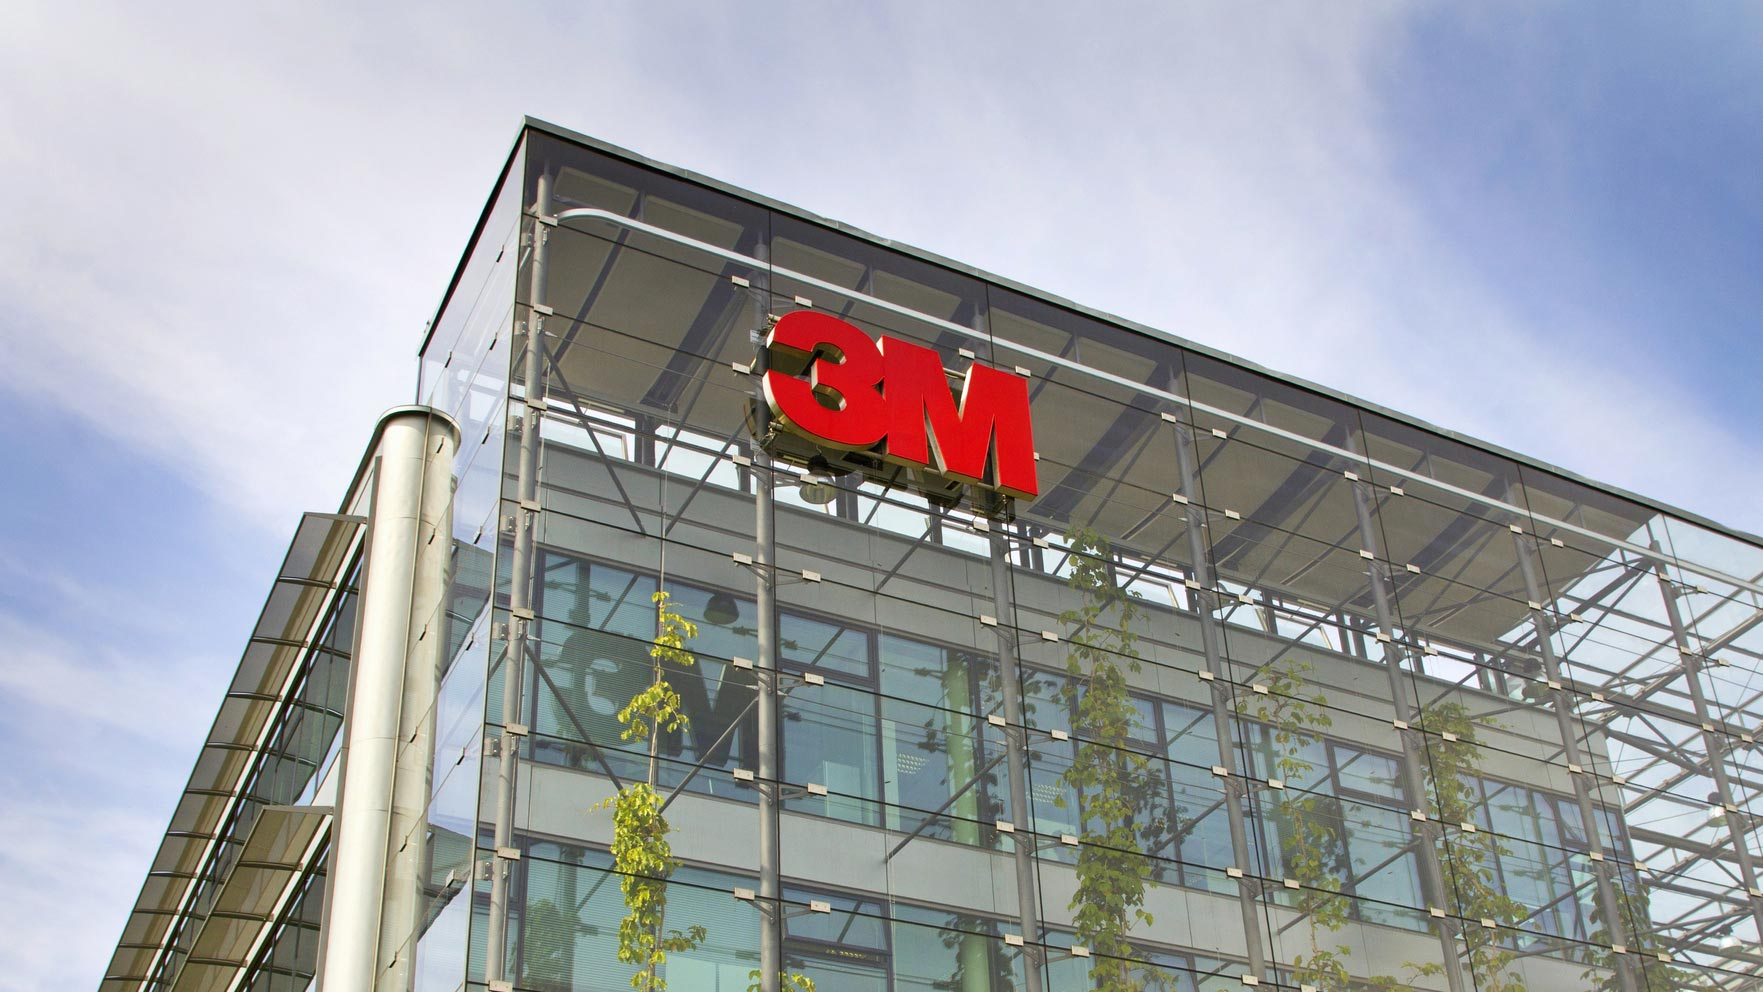 BREAKING NEWS: 3M Withheld Information about PFAs Food